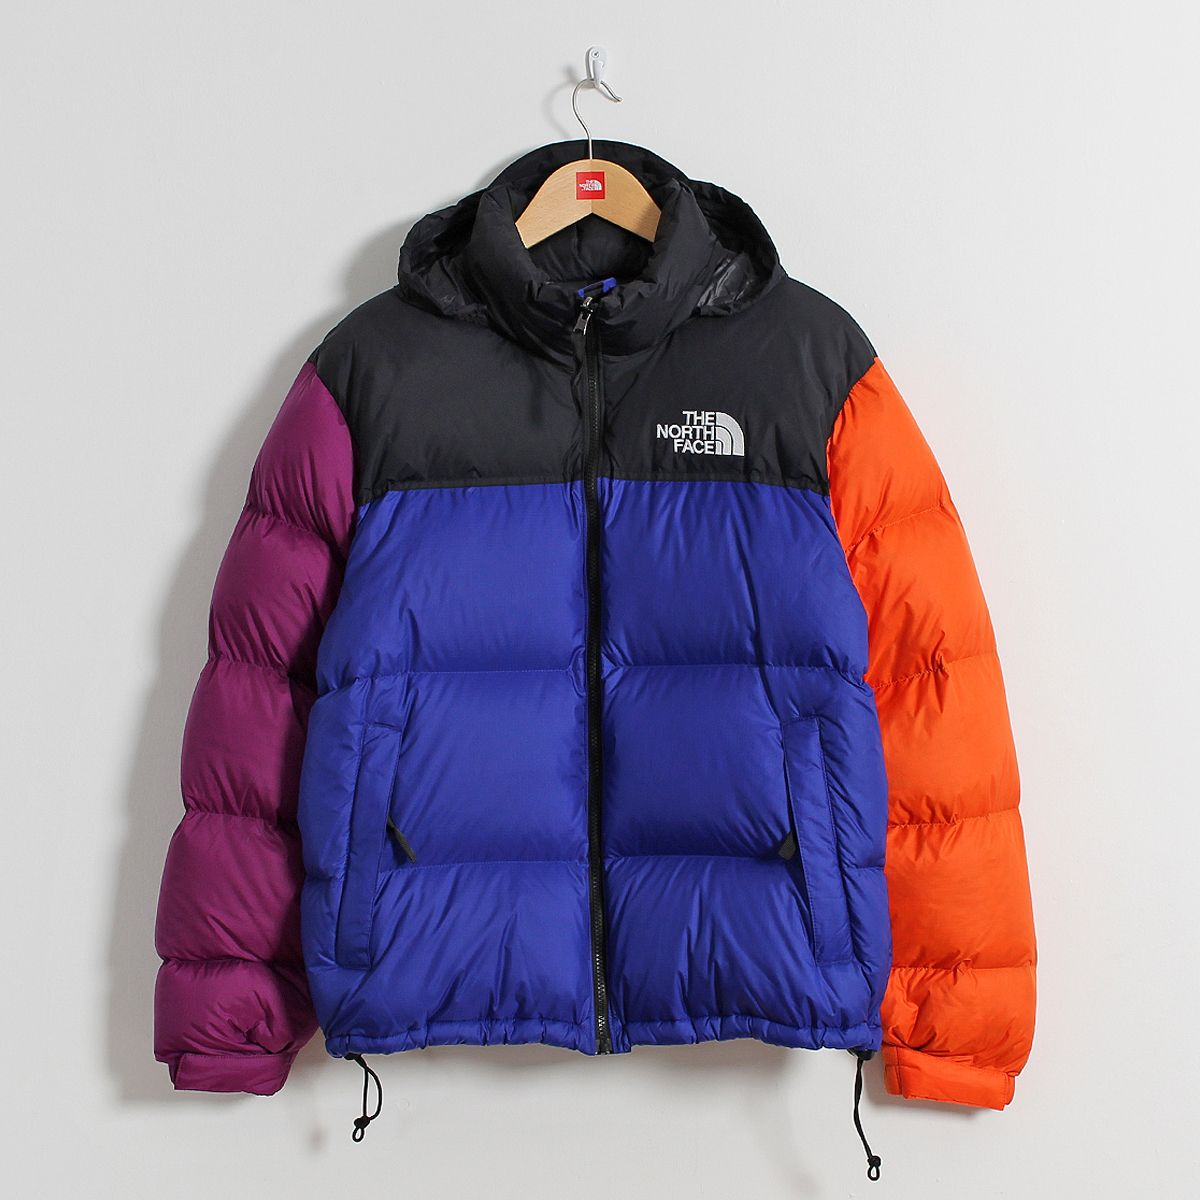 The North Face Rage Pack at Urban Industry in 2019 | North